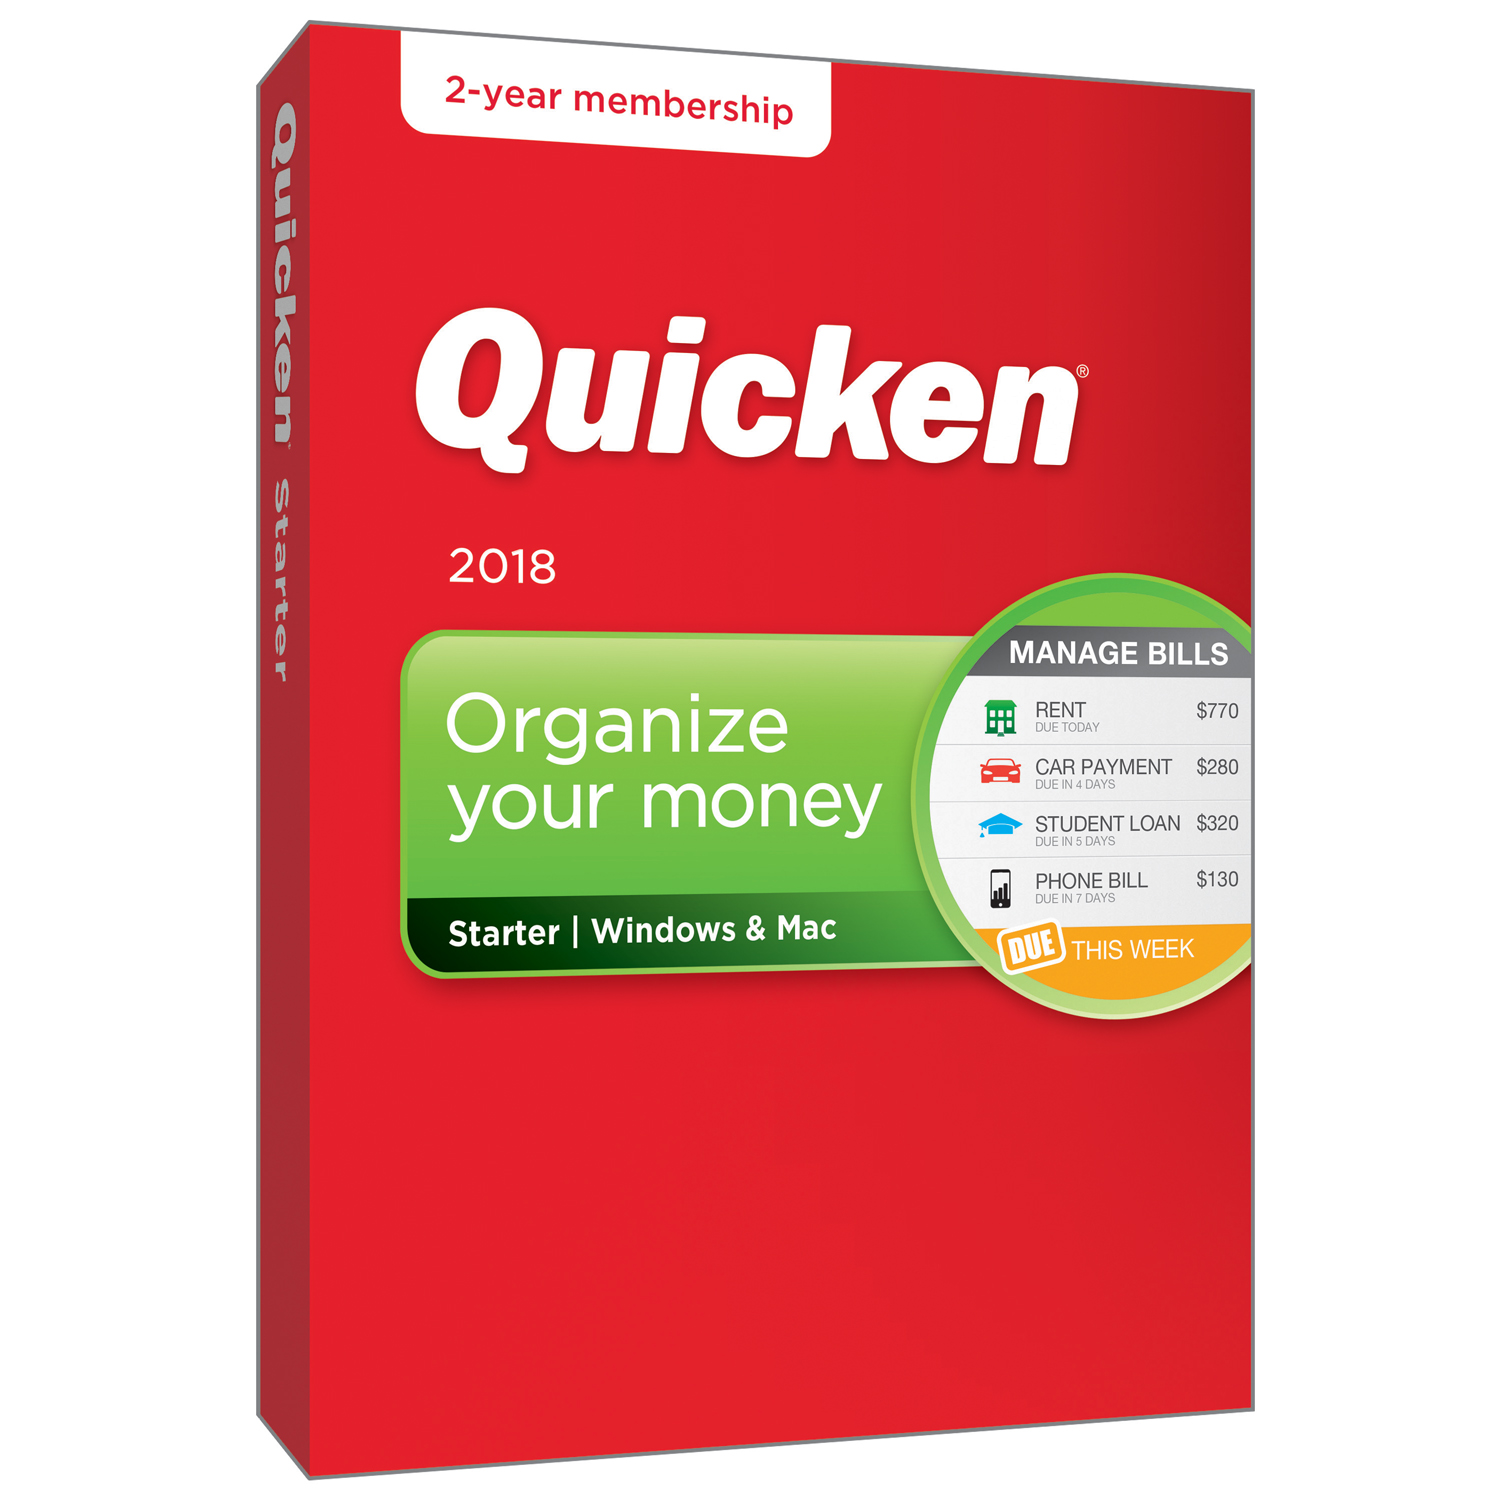 Quicken Starter 2-Year Win/Mac (2018 release)